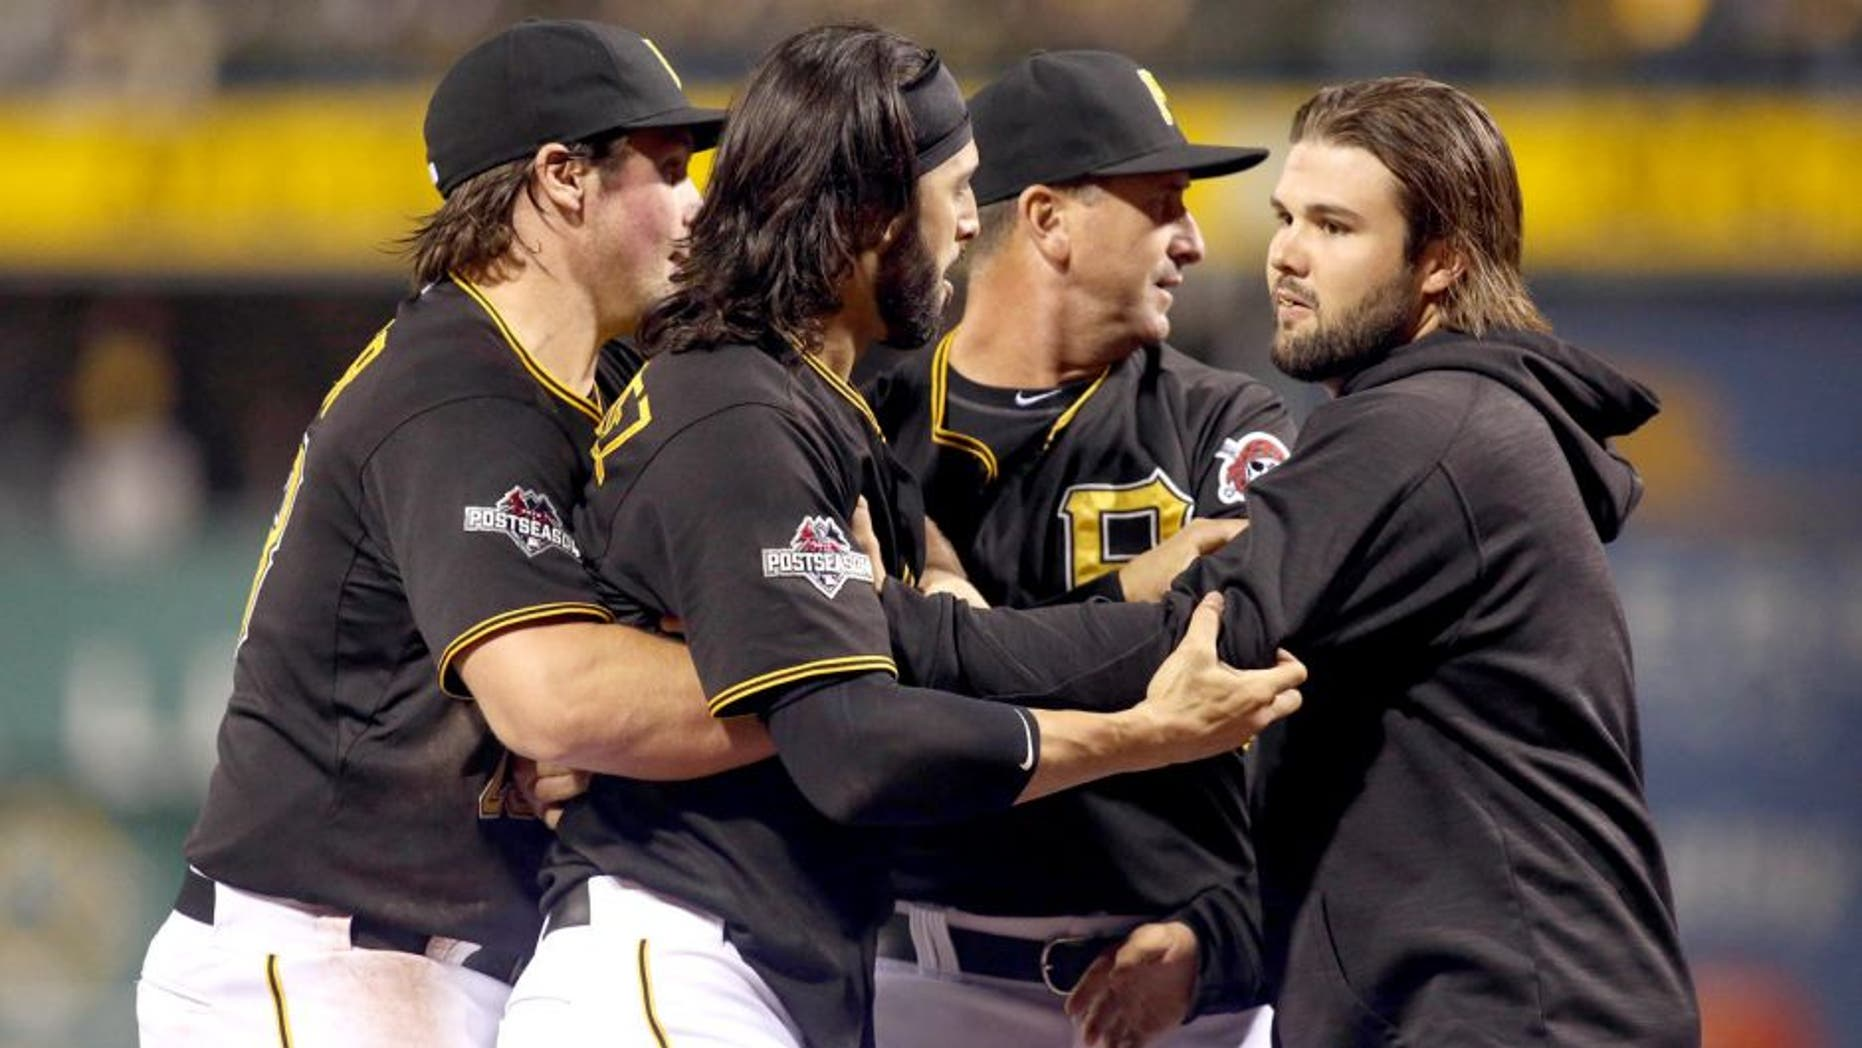 Oct 7, 2015; Pittsburgh, PA, USA; Pittsburgh Pirates first baseman Sean Rodriguez (3) is held back by teammates during an altercation with the Chicago Cubs during the seventh inning in the National League Wild Card playoff baseball game at PNC Park. Rodriguez was ejected from the game. Mandatory Credit: Charles LeClaire-USA TODAY Sports